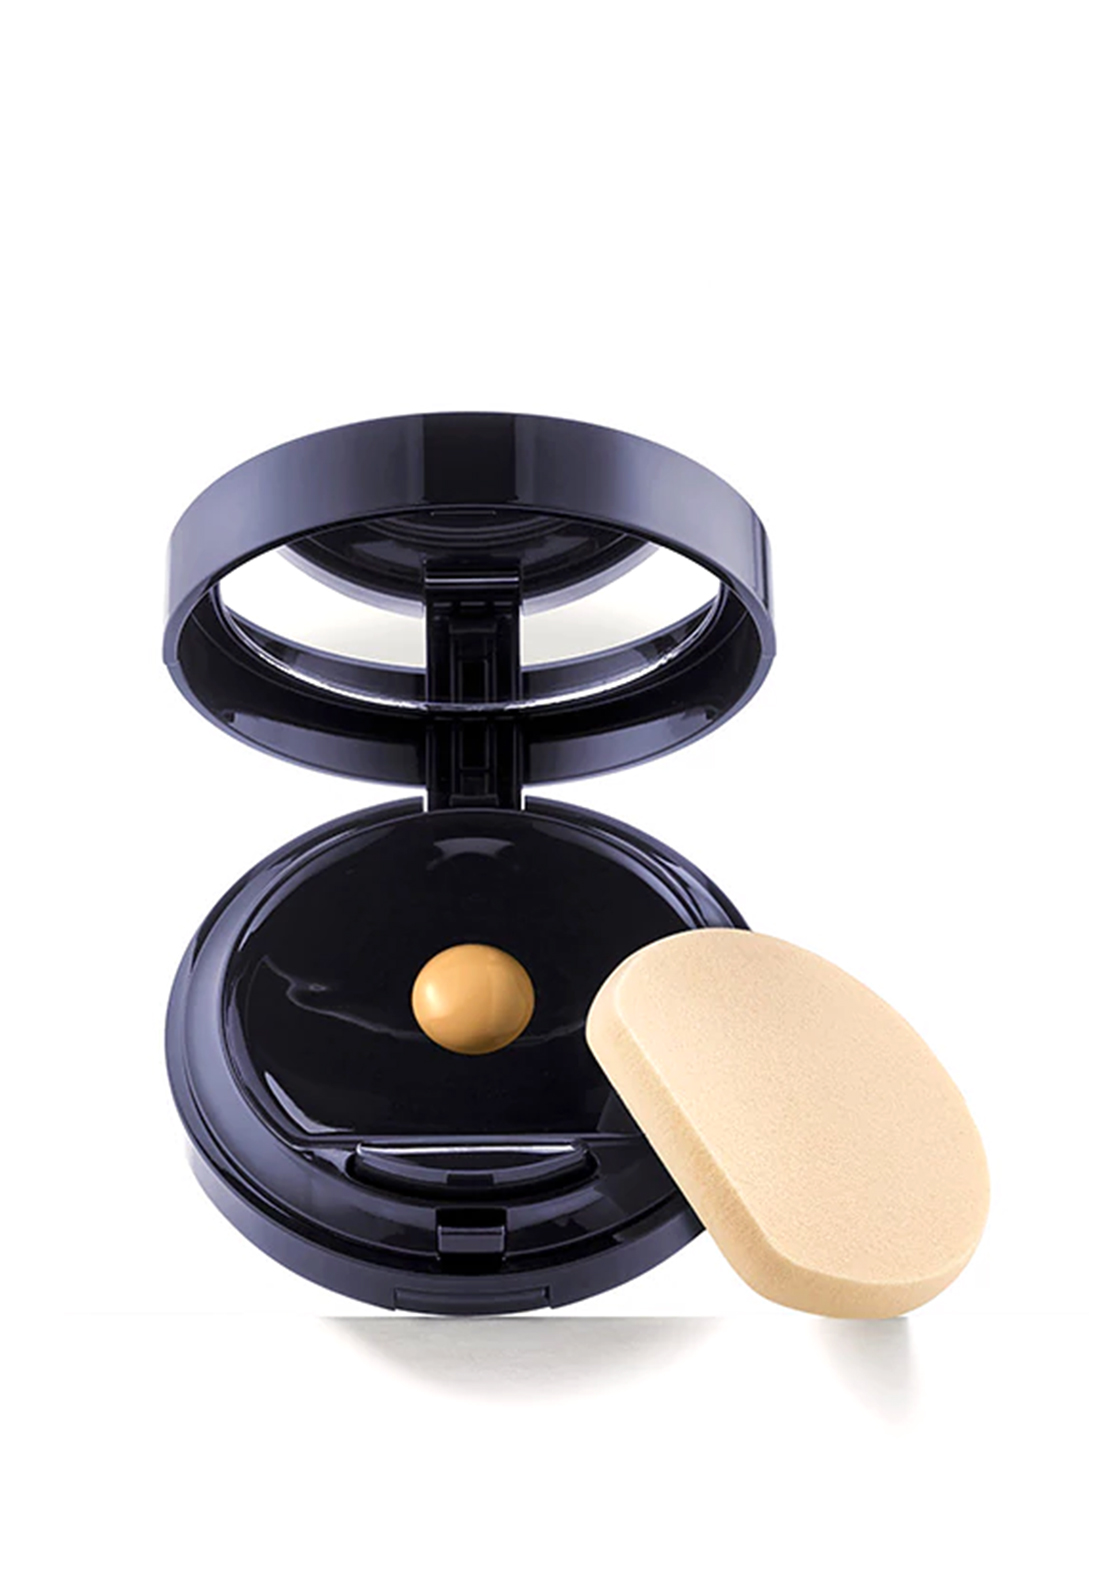 Estee Lauder Double Wear Make Up to Go Liquid Compact, Tawny